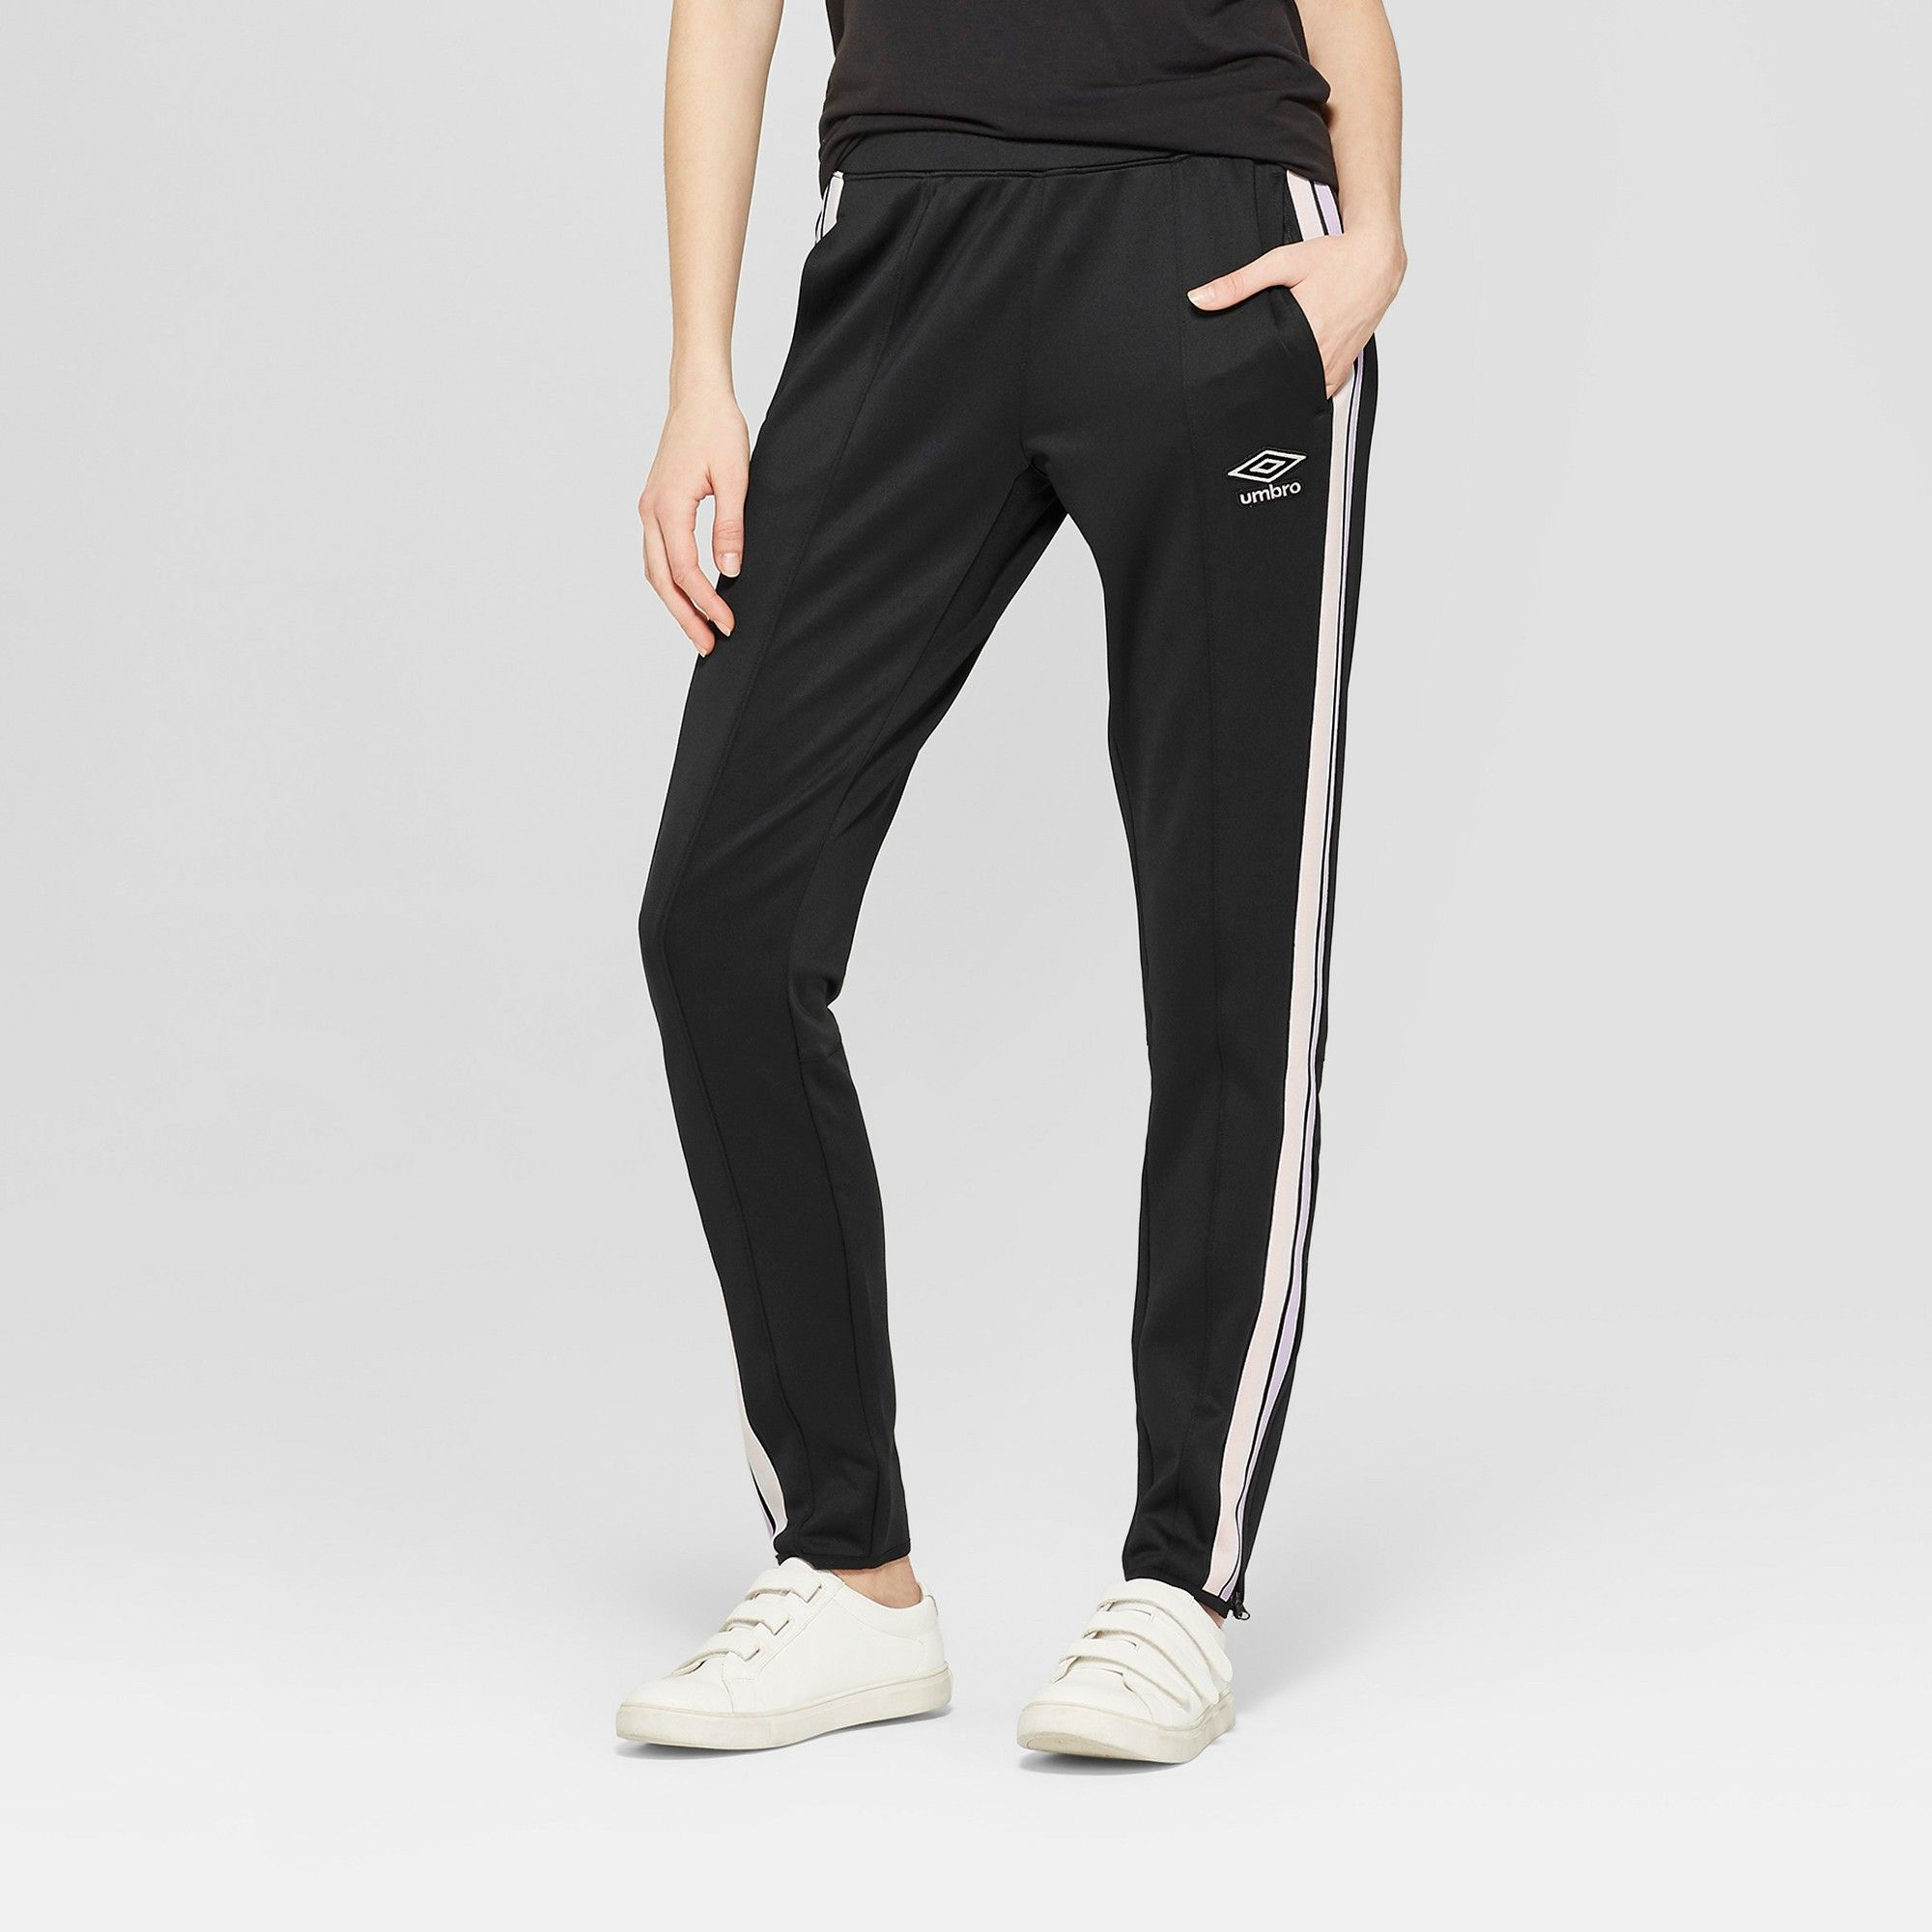 umbro womens track pants